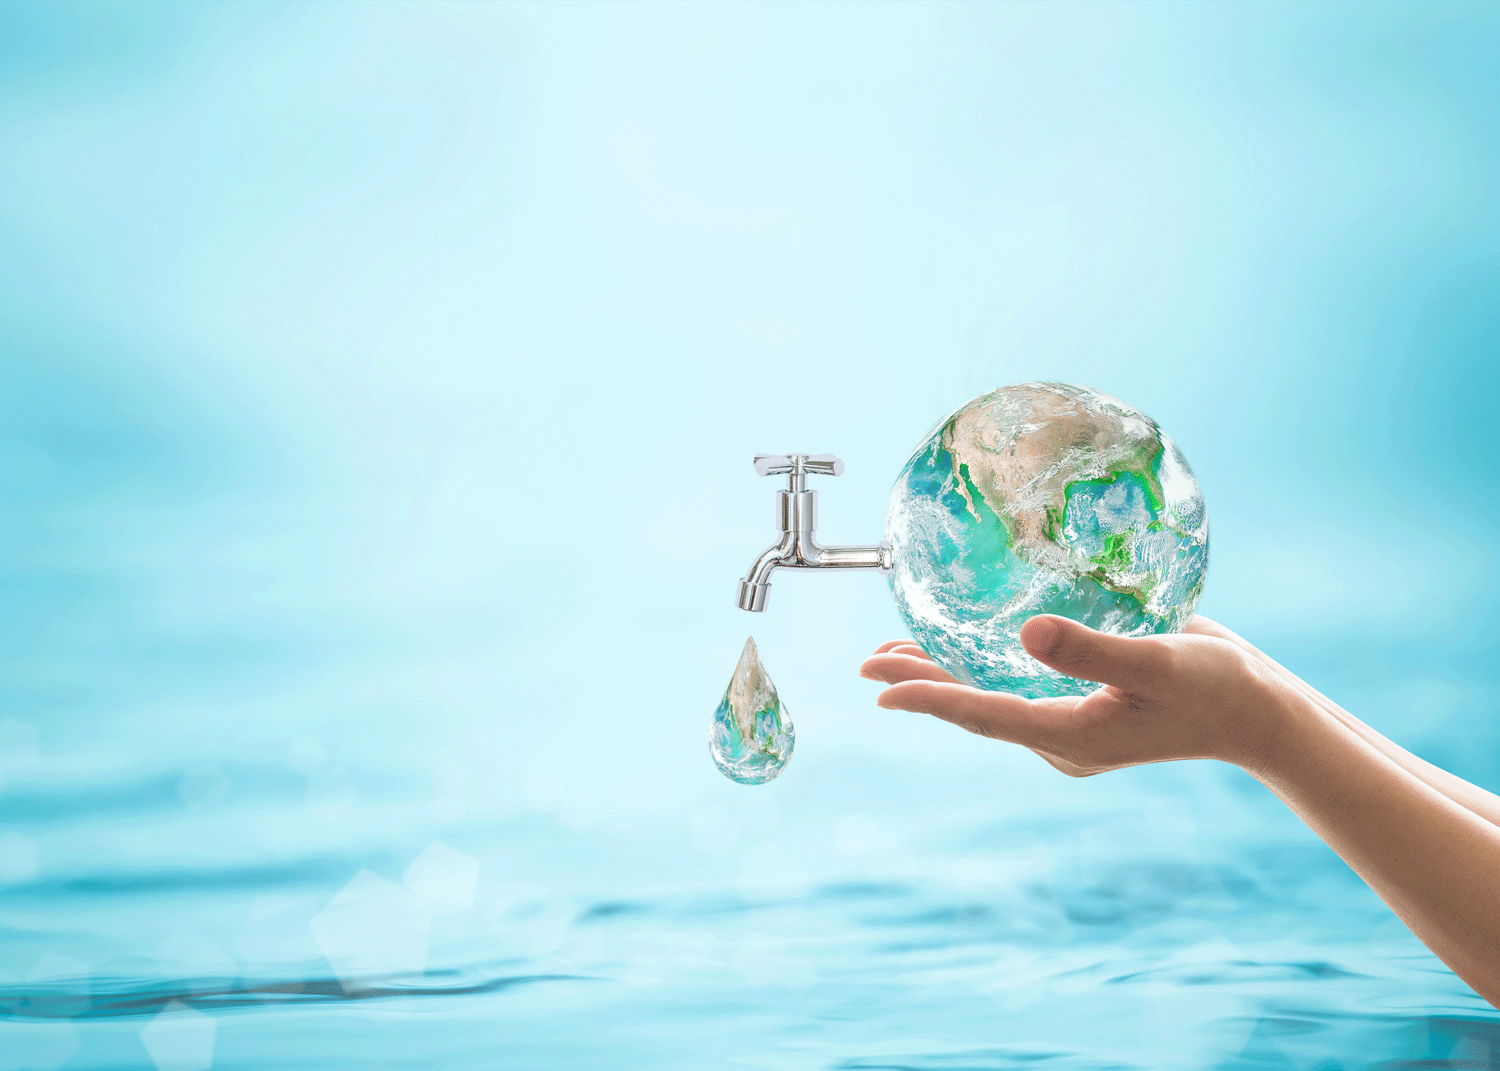 Hand holiday globe above water